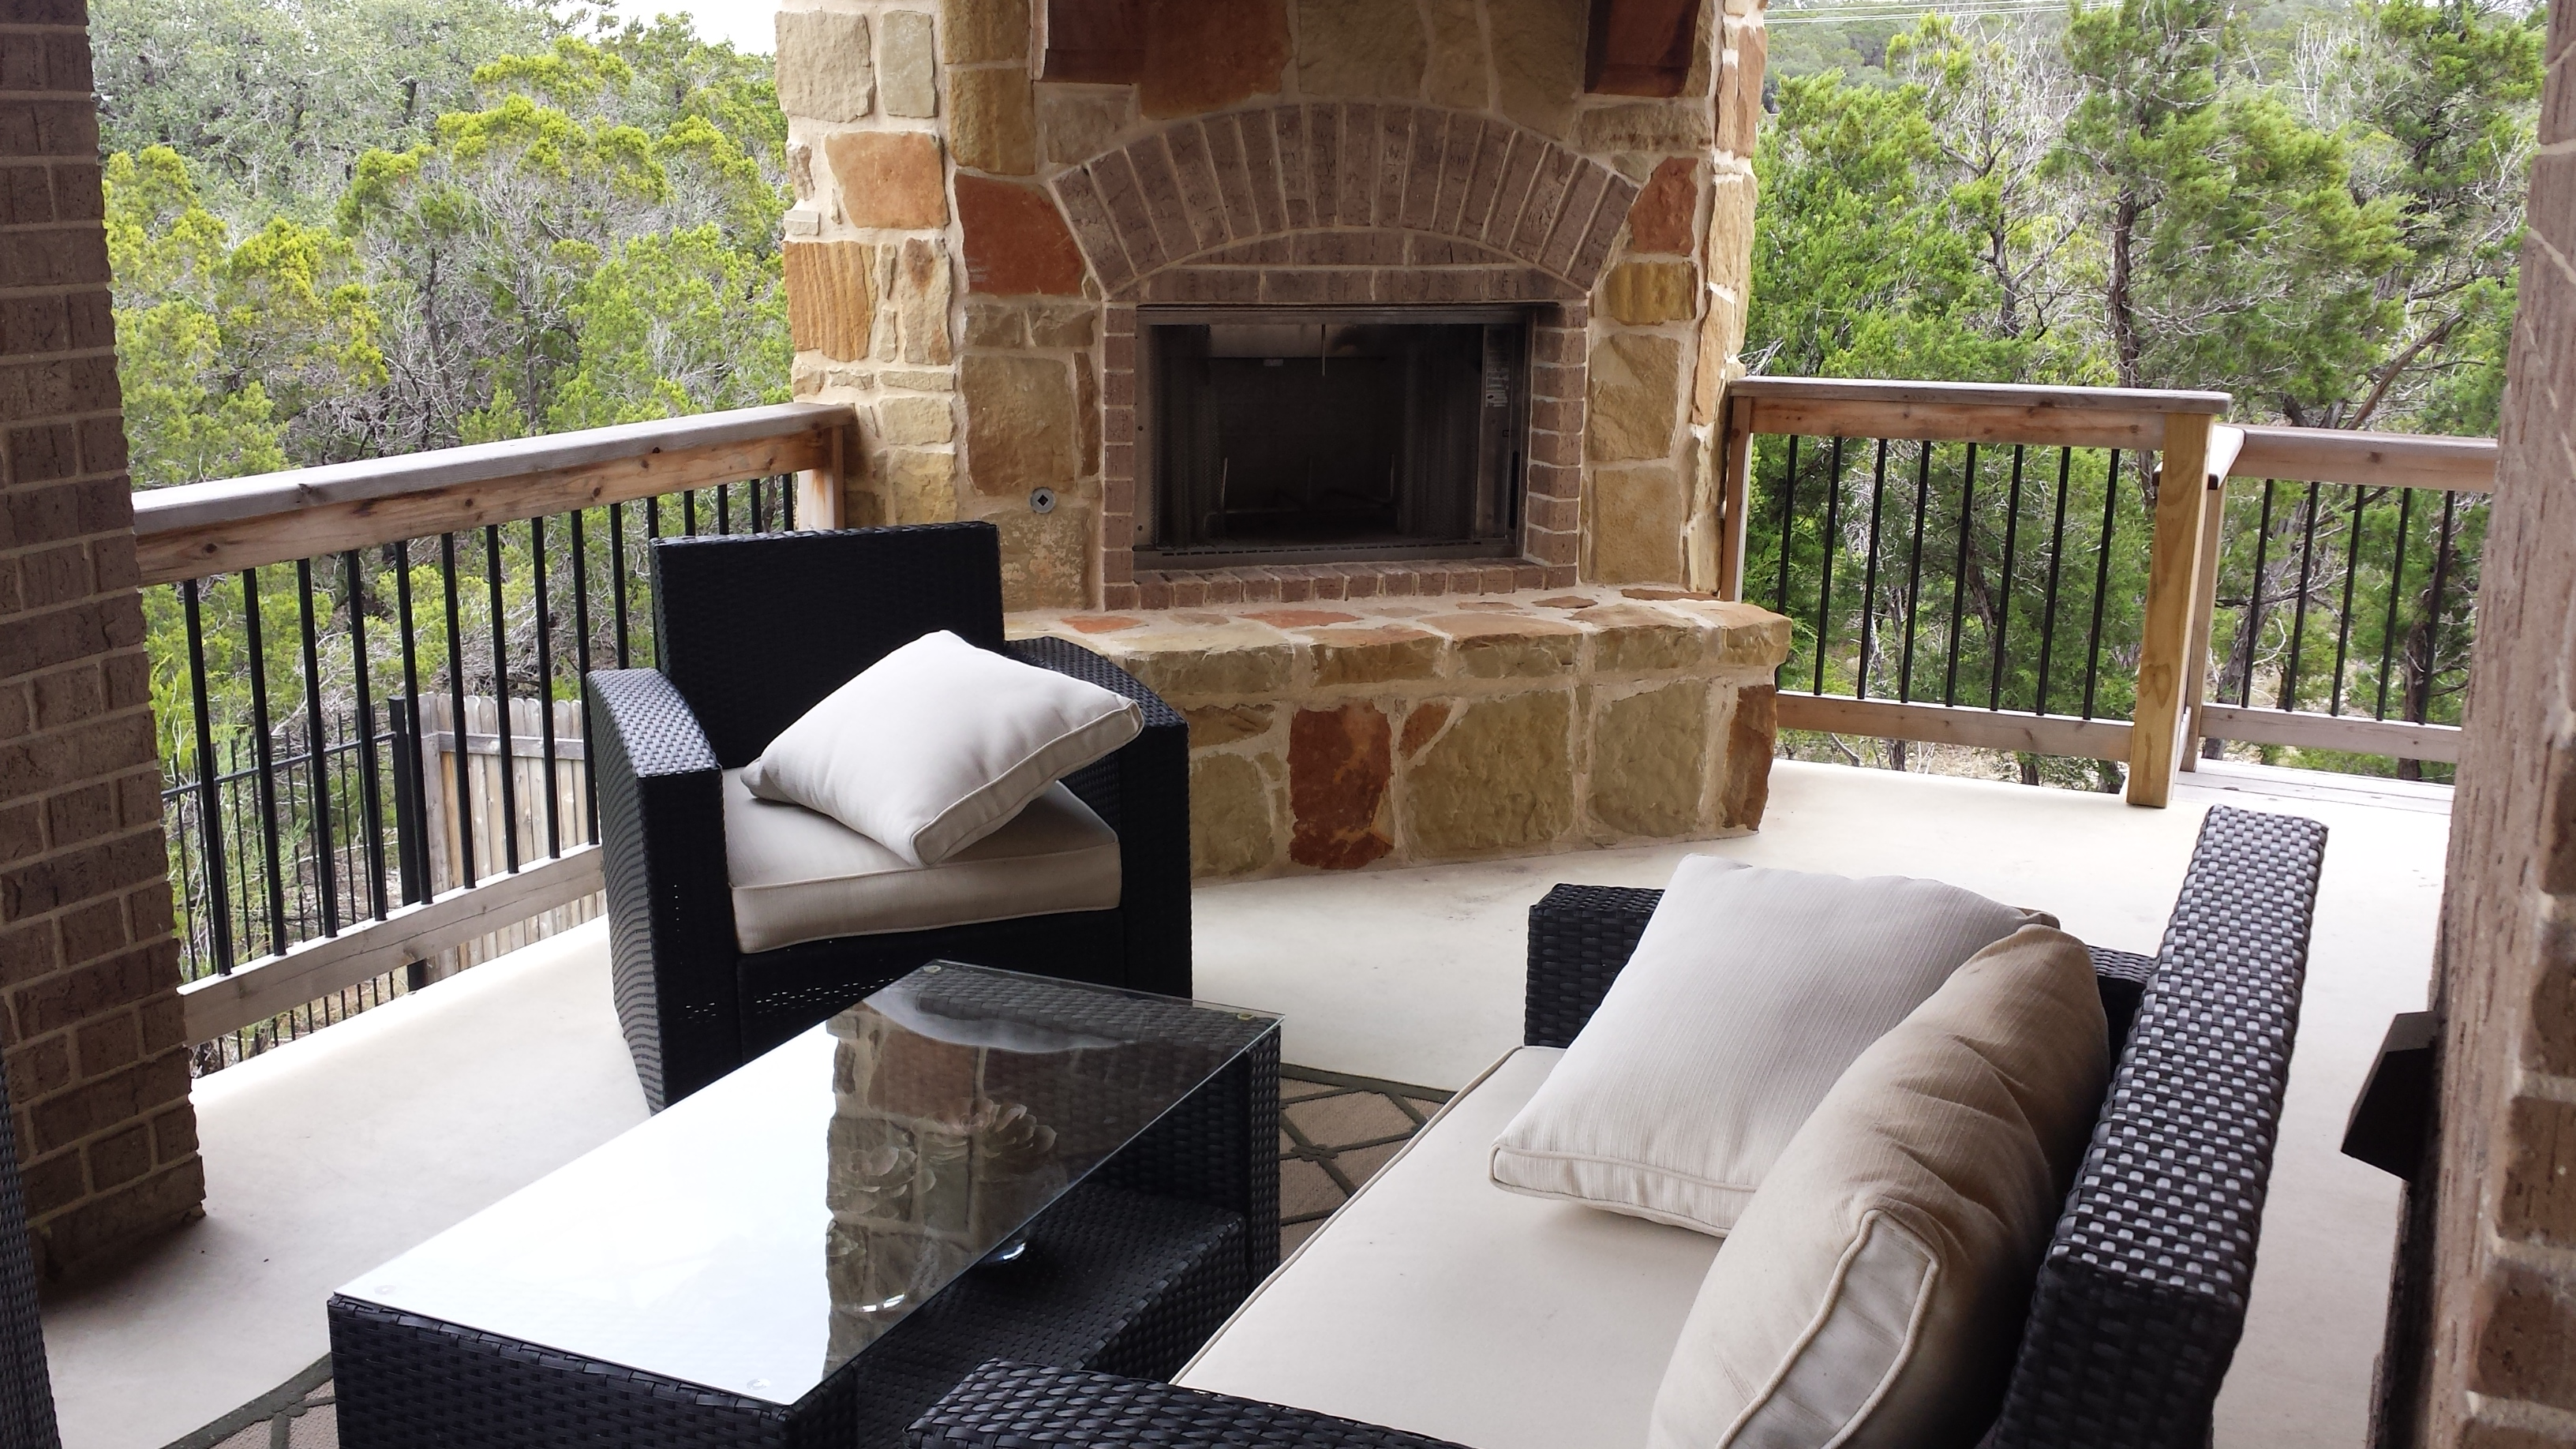 New homes in san antonio price edging up for Cost of outdoor living space